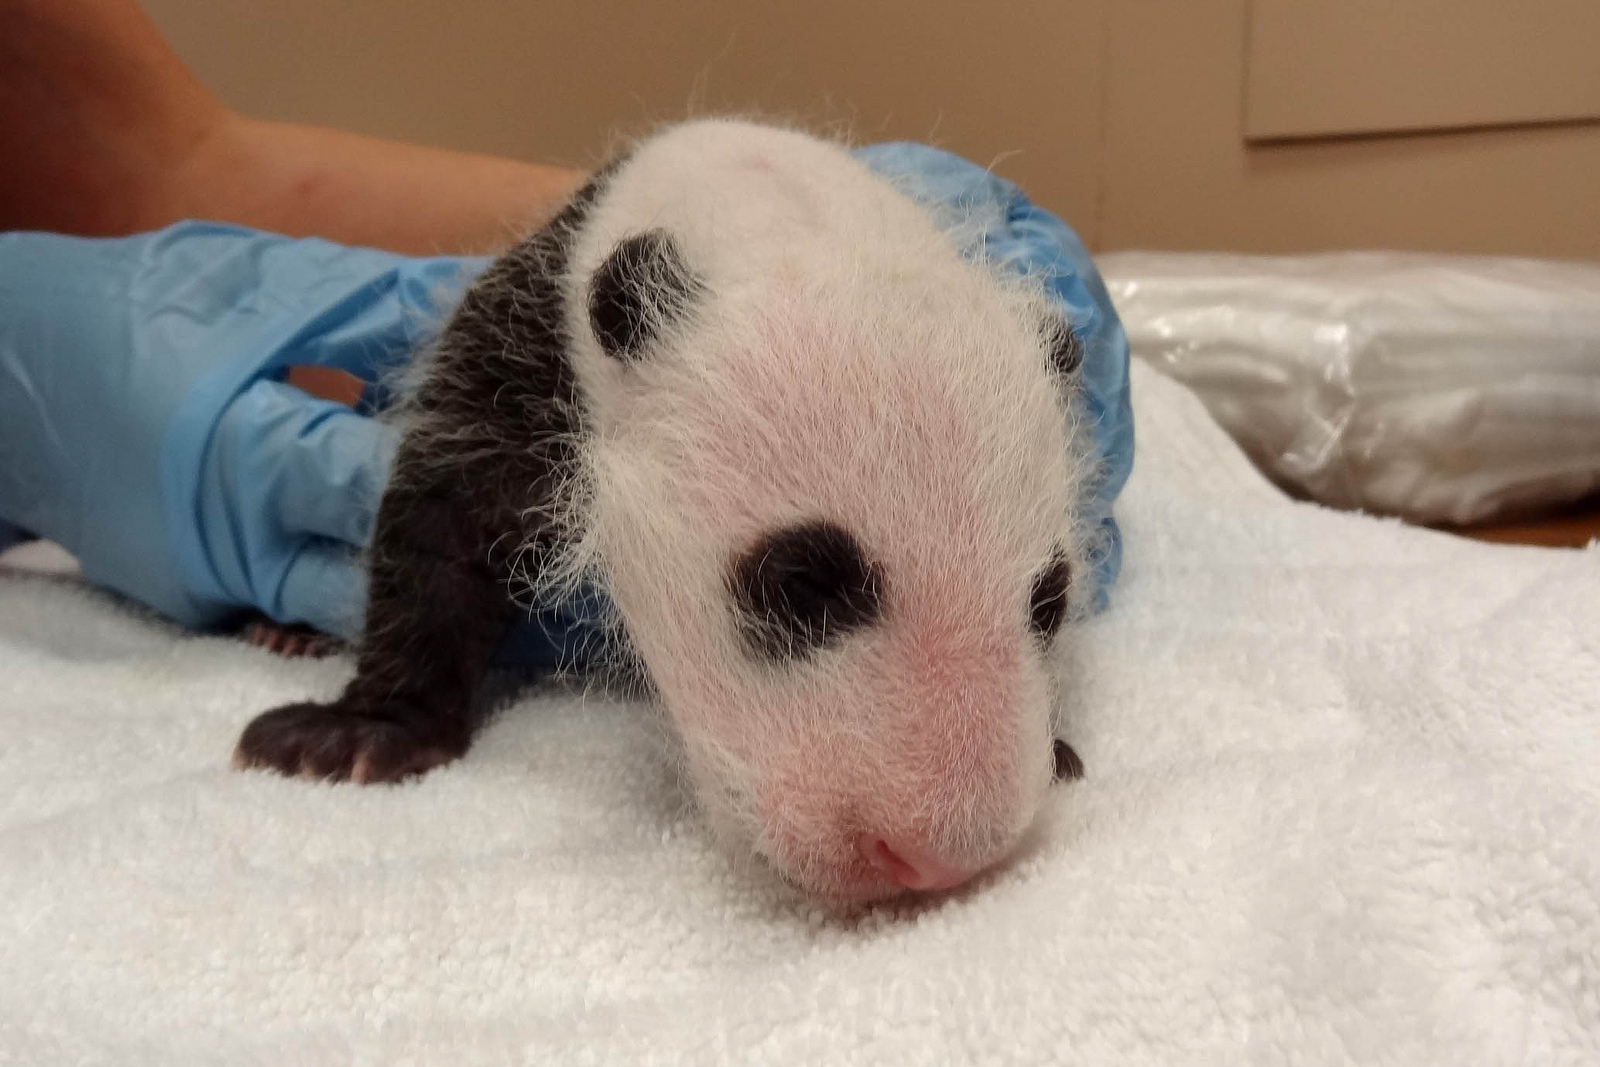 The National Zoo's female panda cub underwent her first comprehensive vet exam Tuesday and now weighs almost two pounds, vets say.